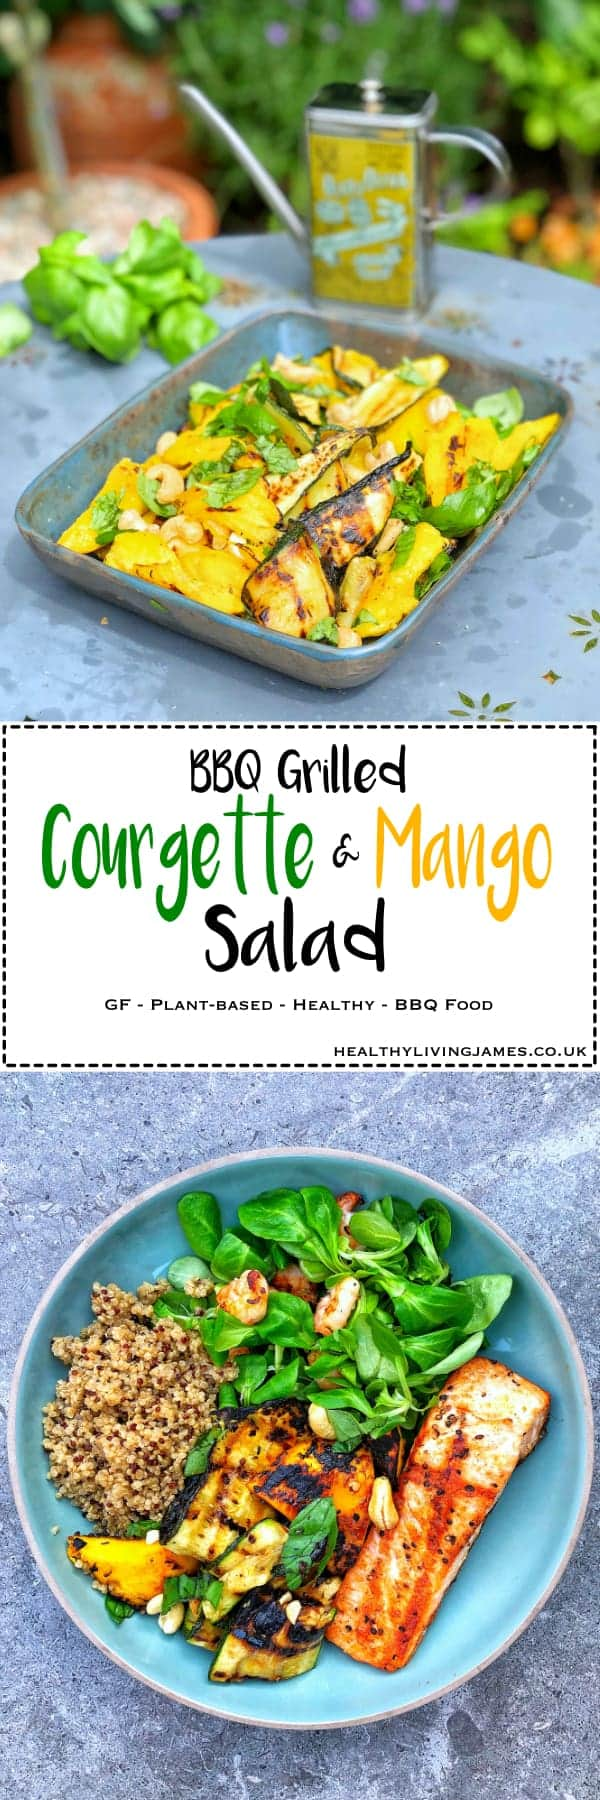 BBQ Grilled Courgette & Mango Salad